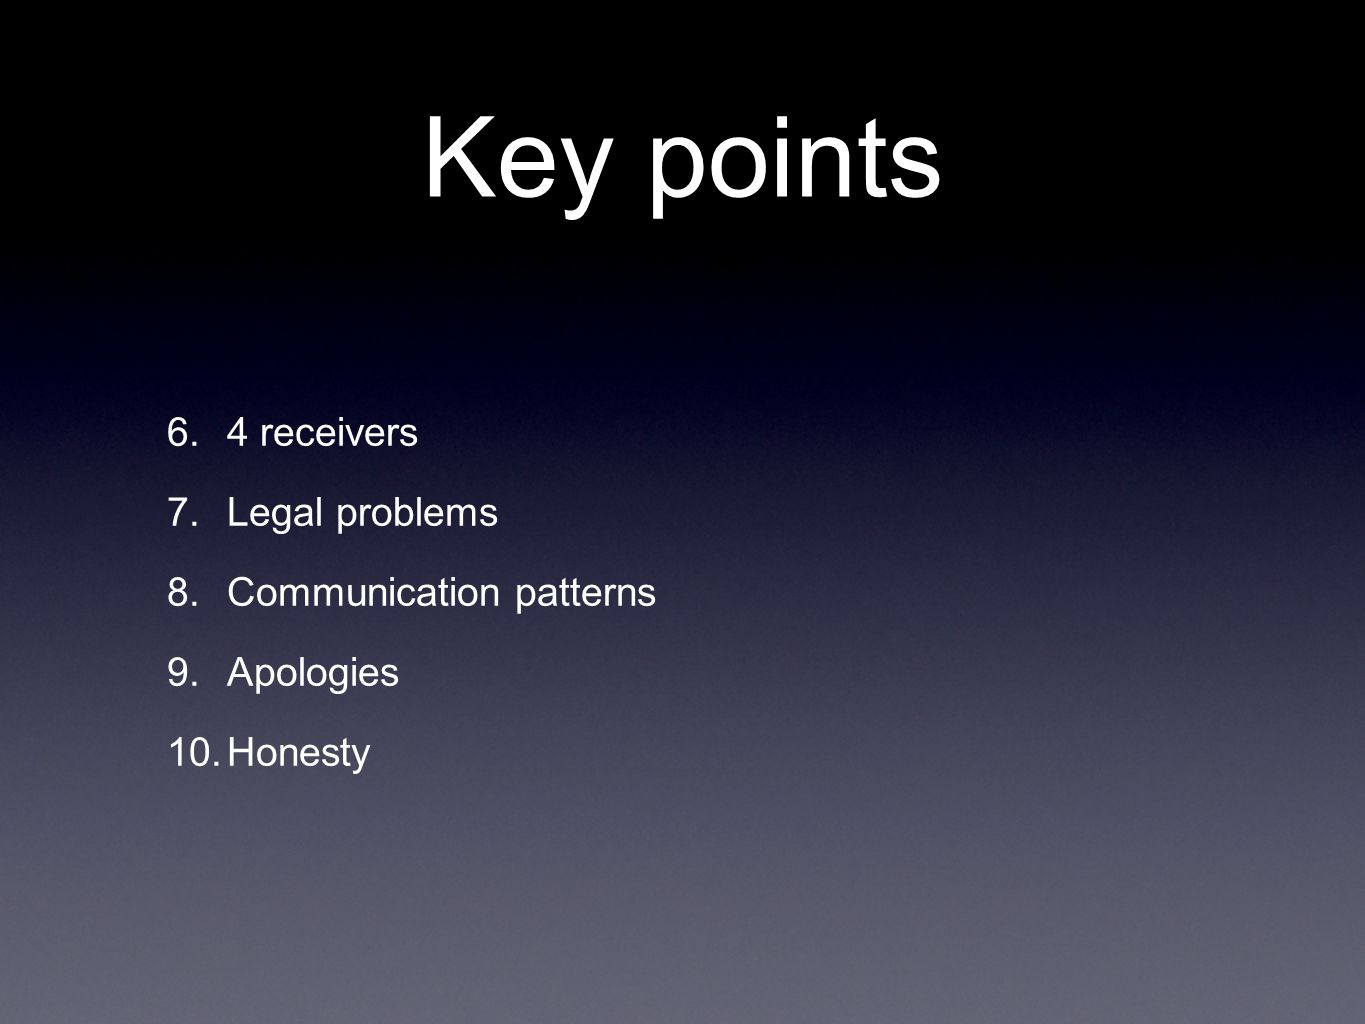 Key points 6. 4 receivers 7. Legal problems 8. Communication patterns 9. Apologies 10. Honesty